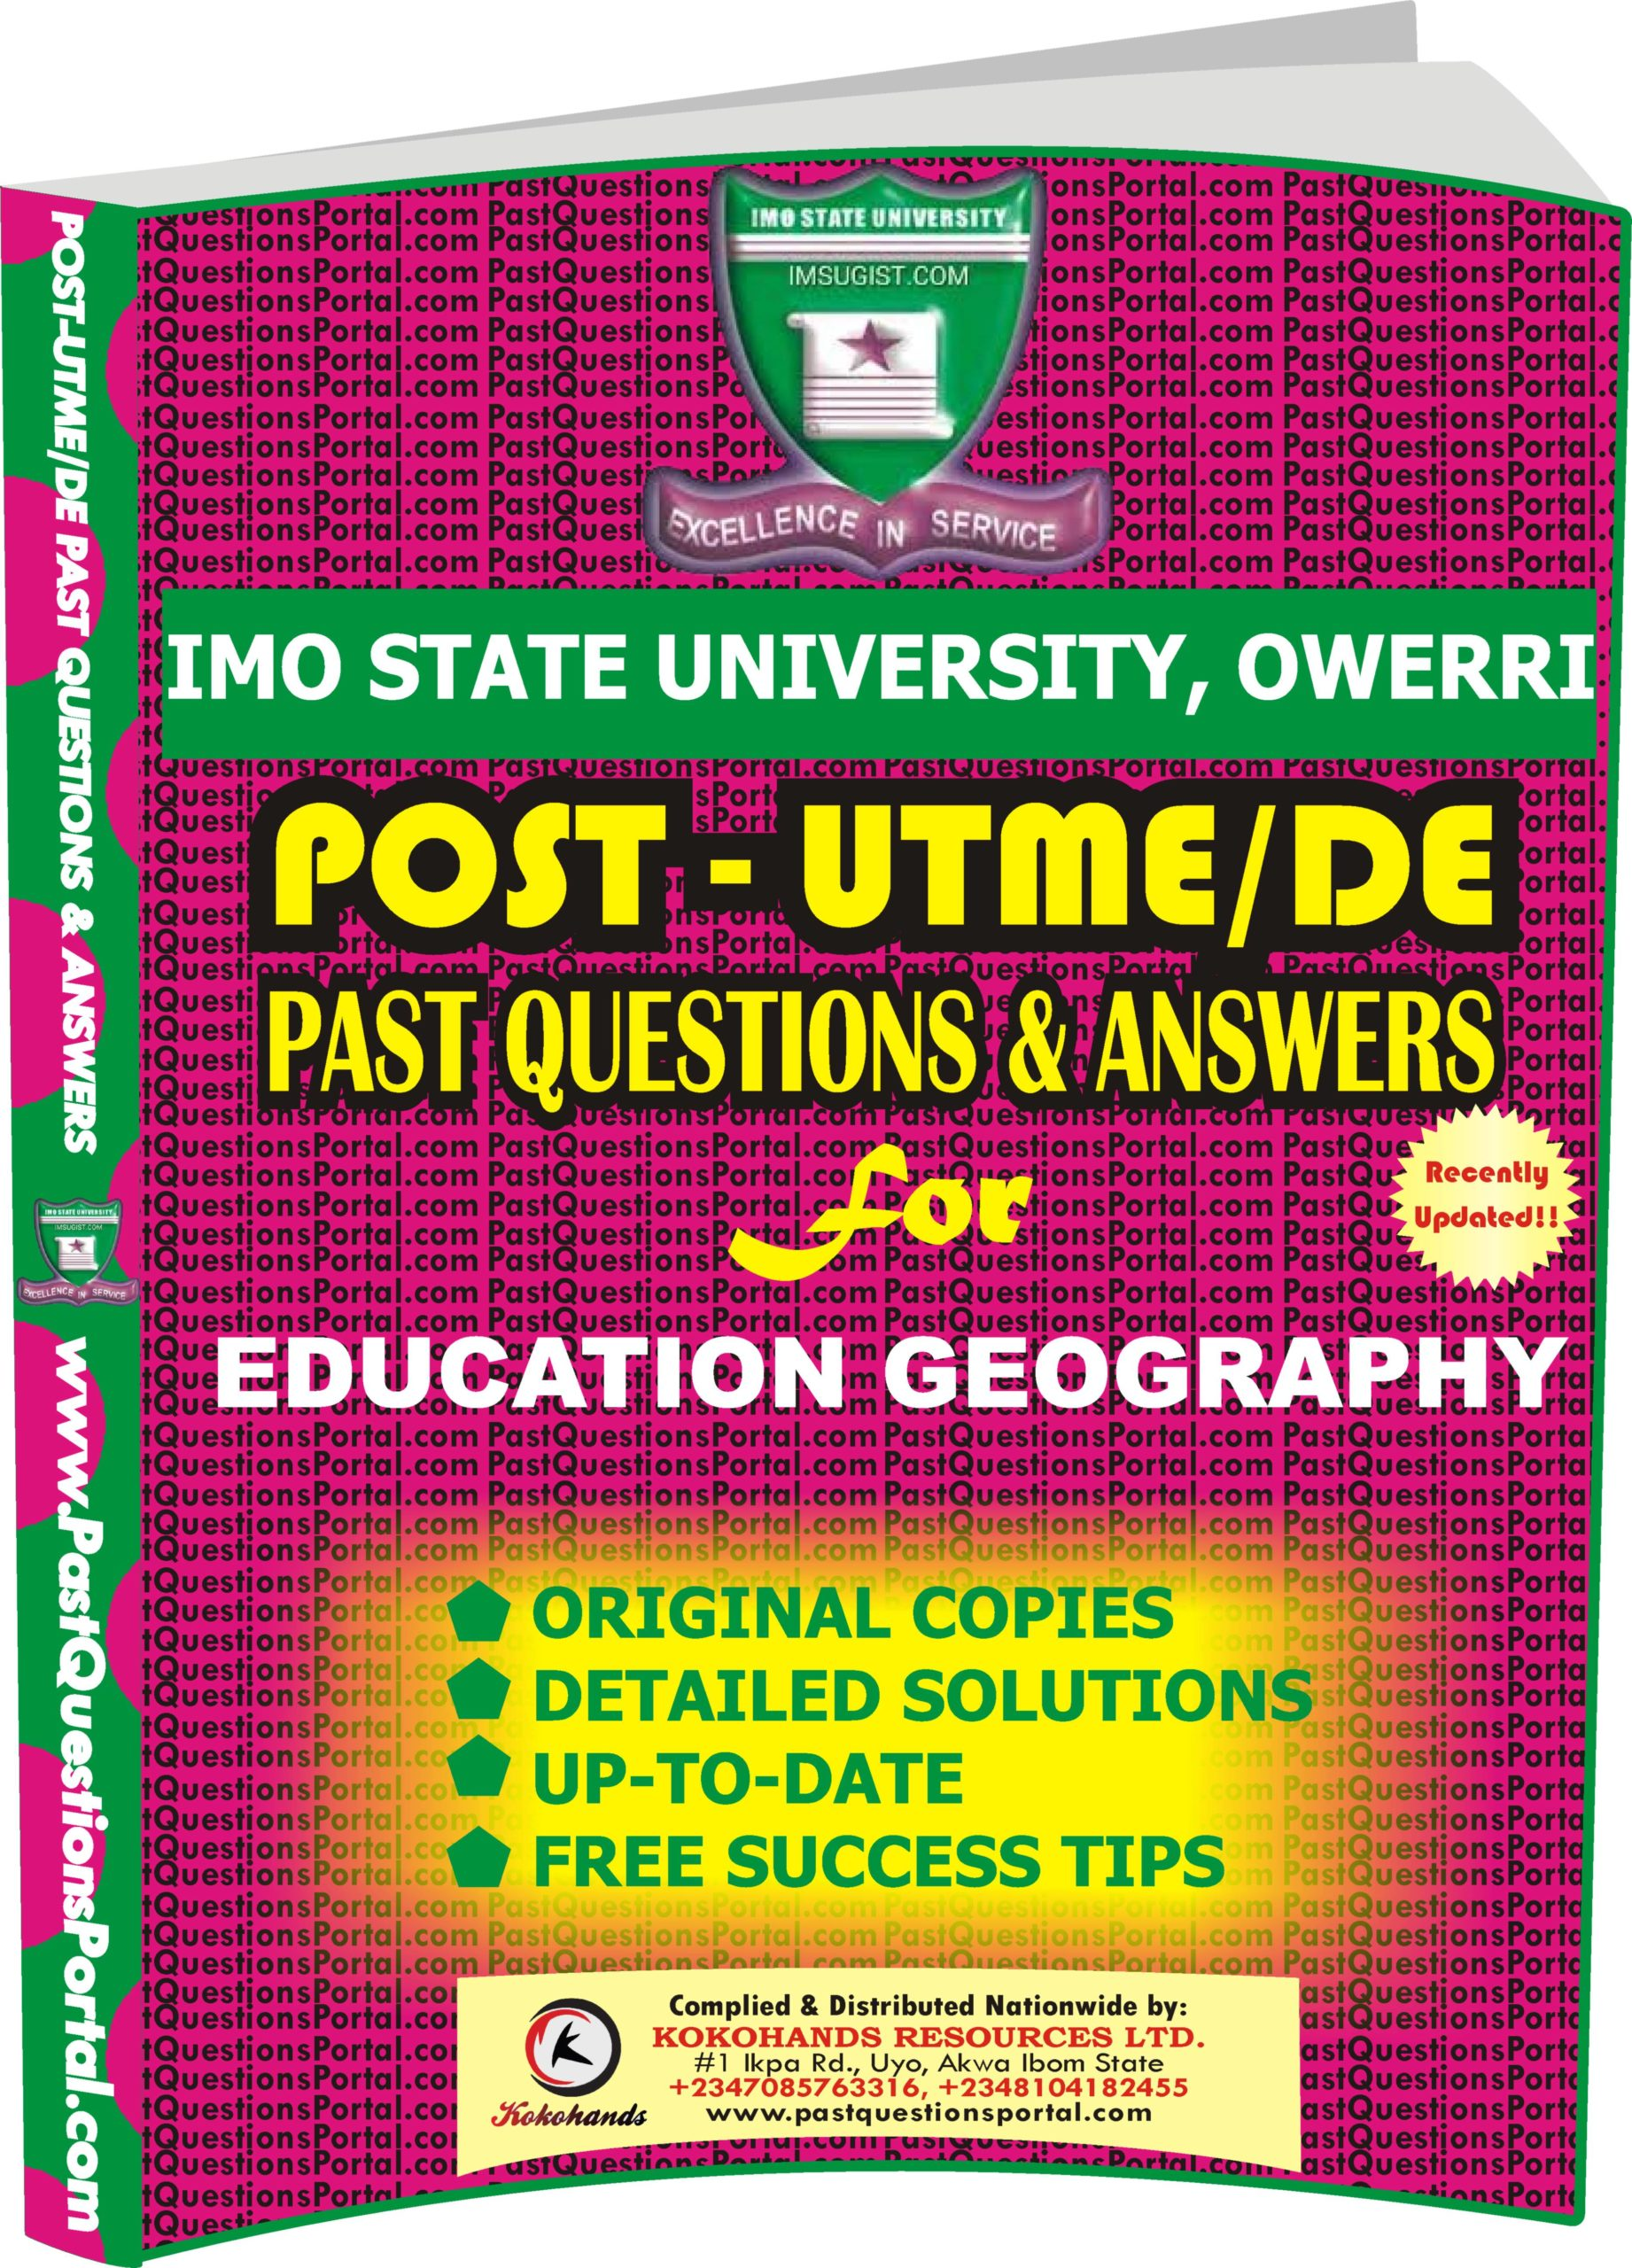 IMSU Post UTME Past Questions for EDUCATION GEOGRAPHY